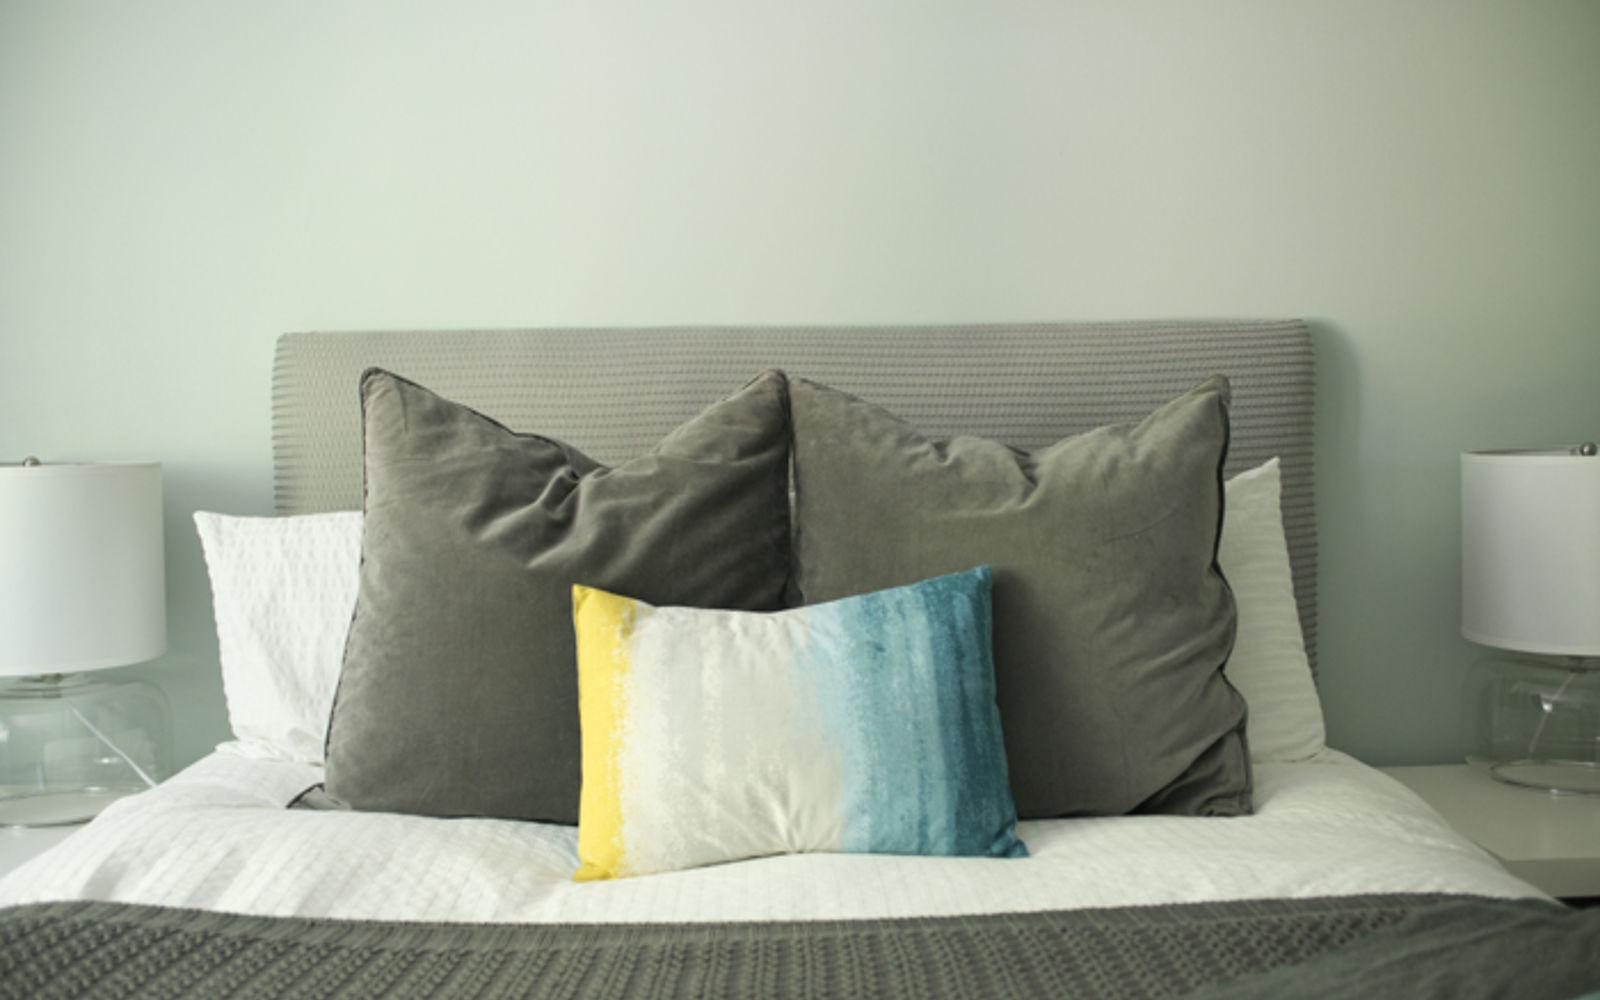 s these are the diy headboard ideas you ve been dreaming of, Use Egg Crate Foam For A Cute And Easy Board